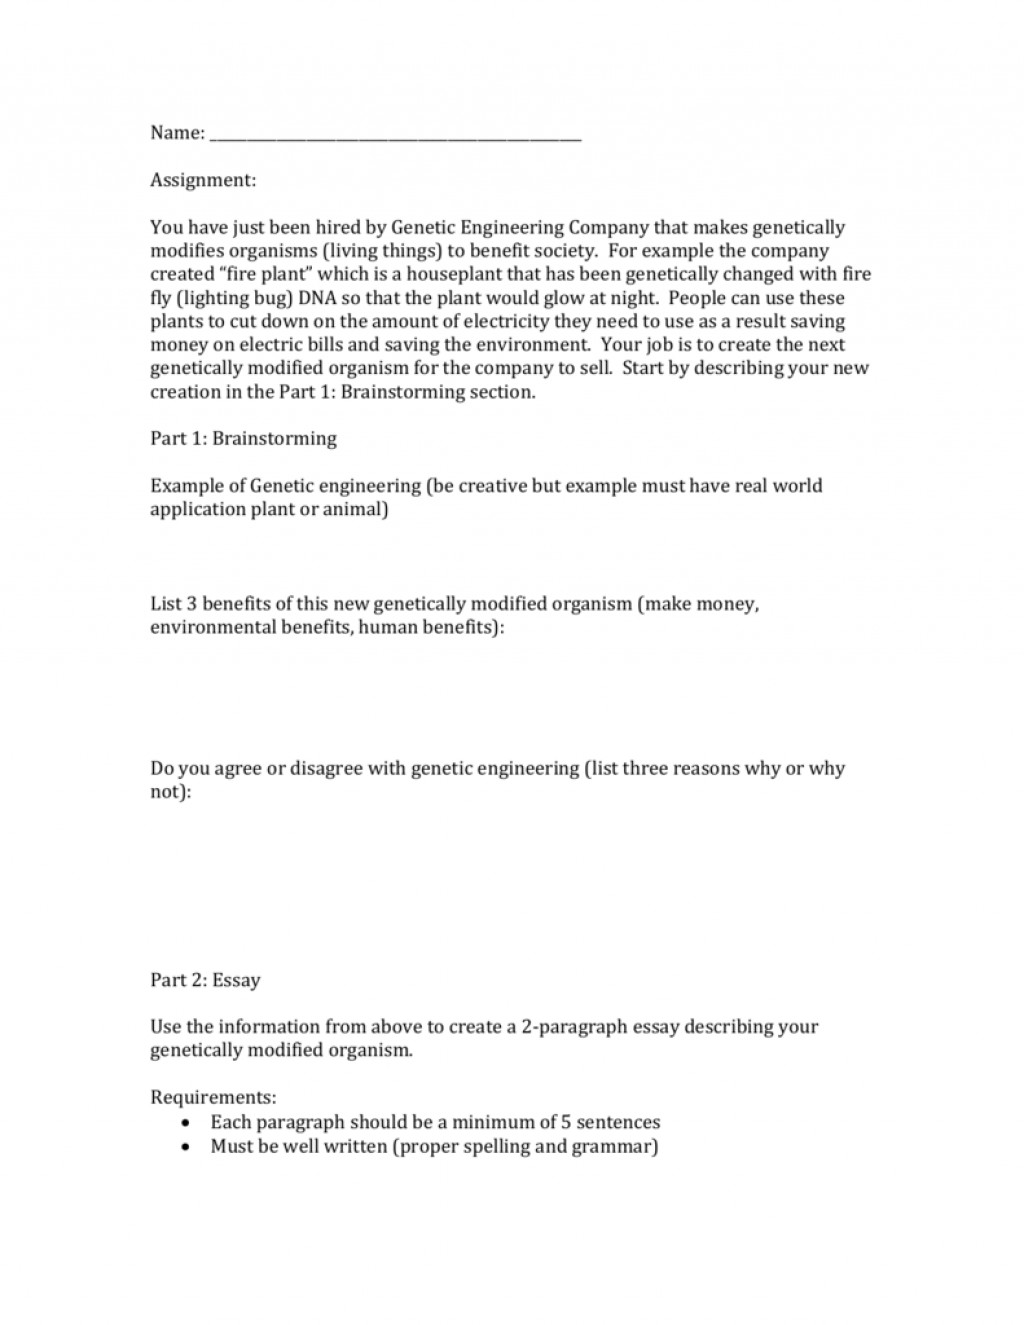 006 009591371 1 Essay Example About Genetic Striking Engineering Disadvantages Of Argumentative On Human Persuasive Large